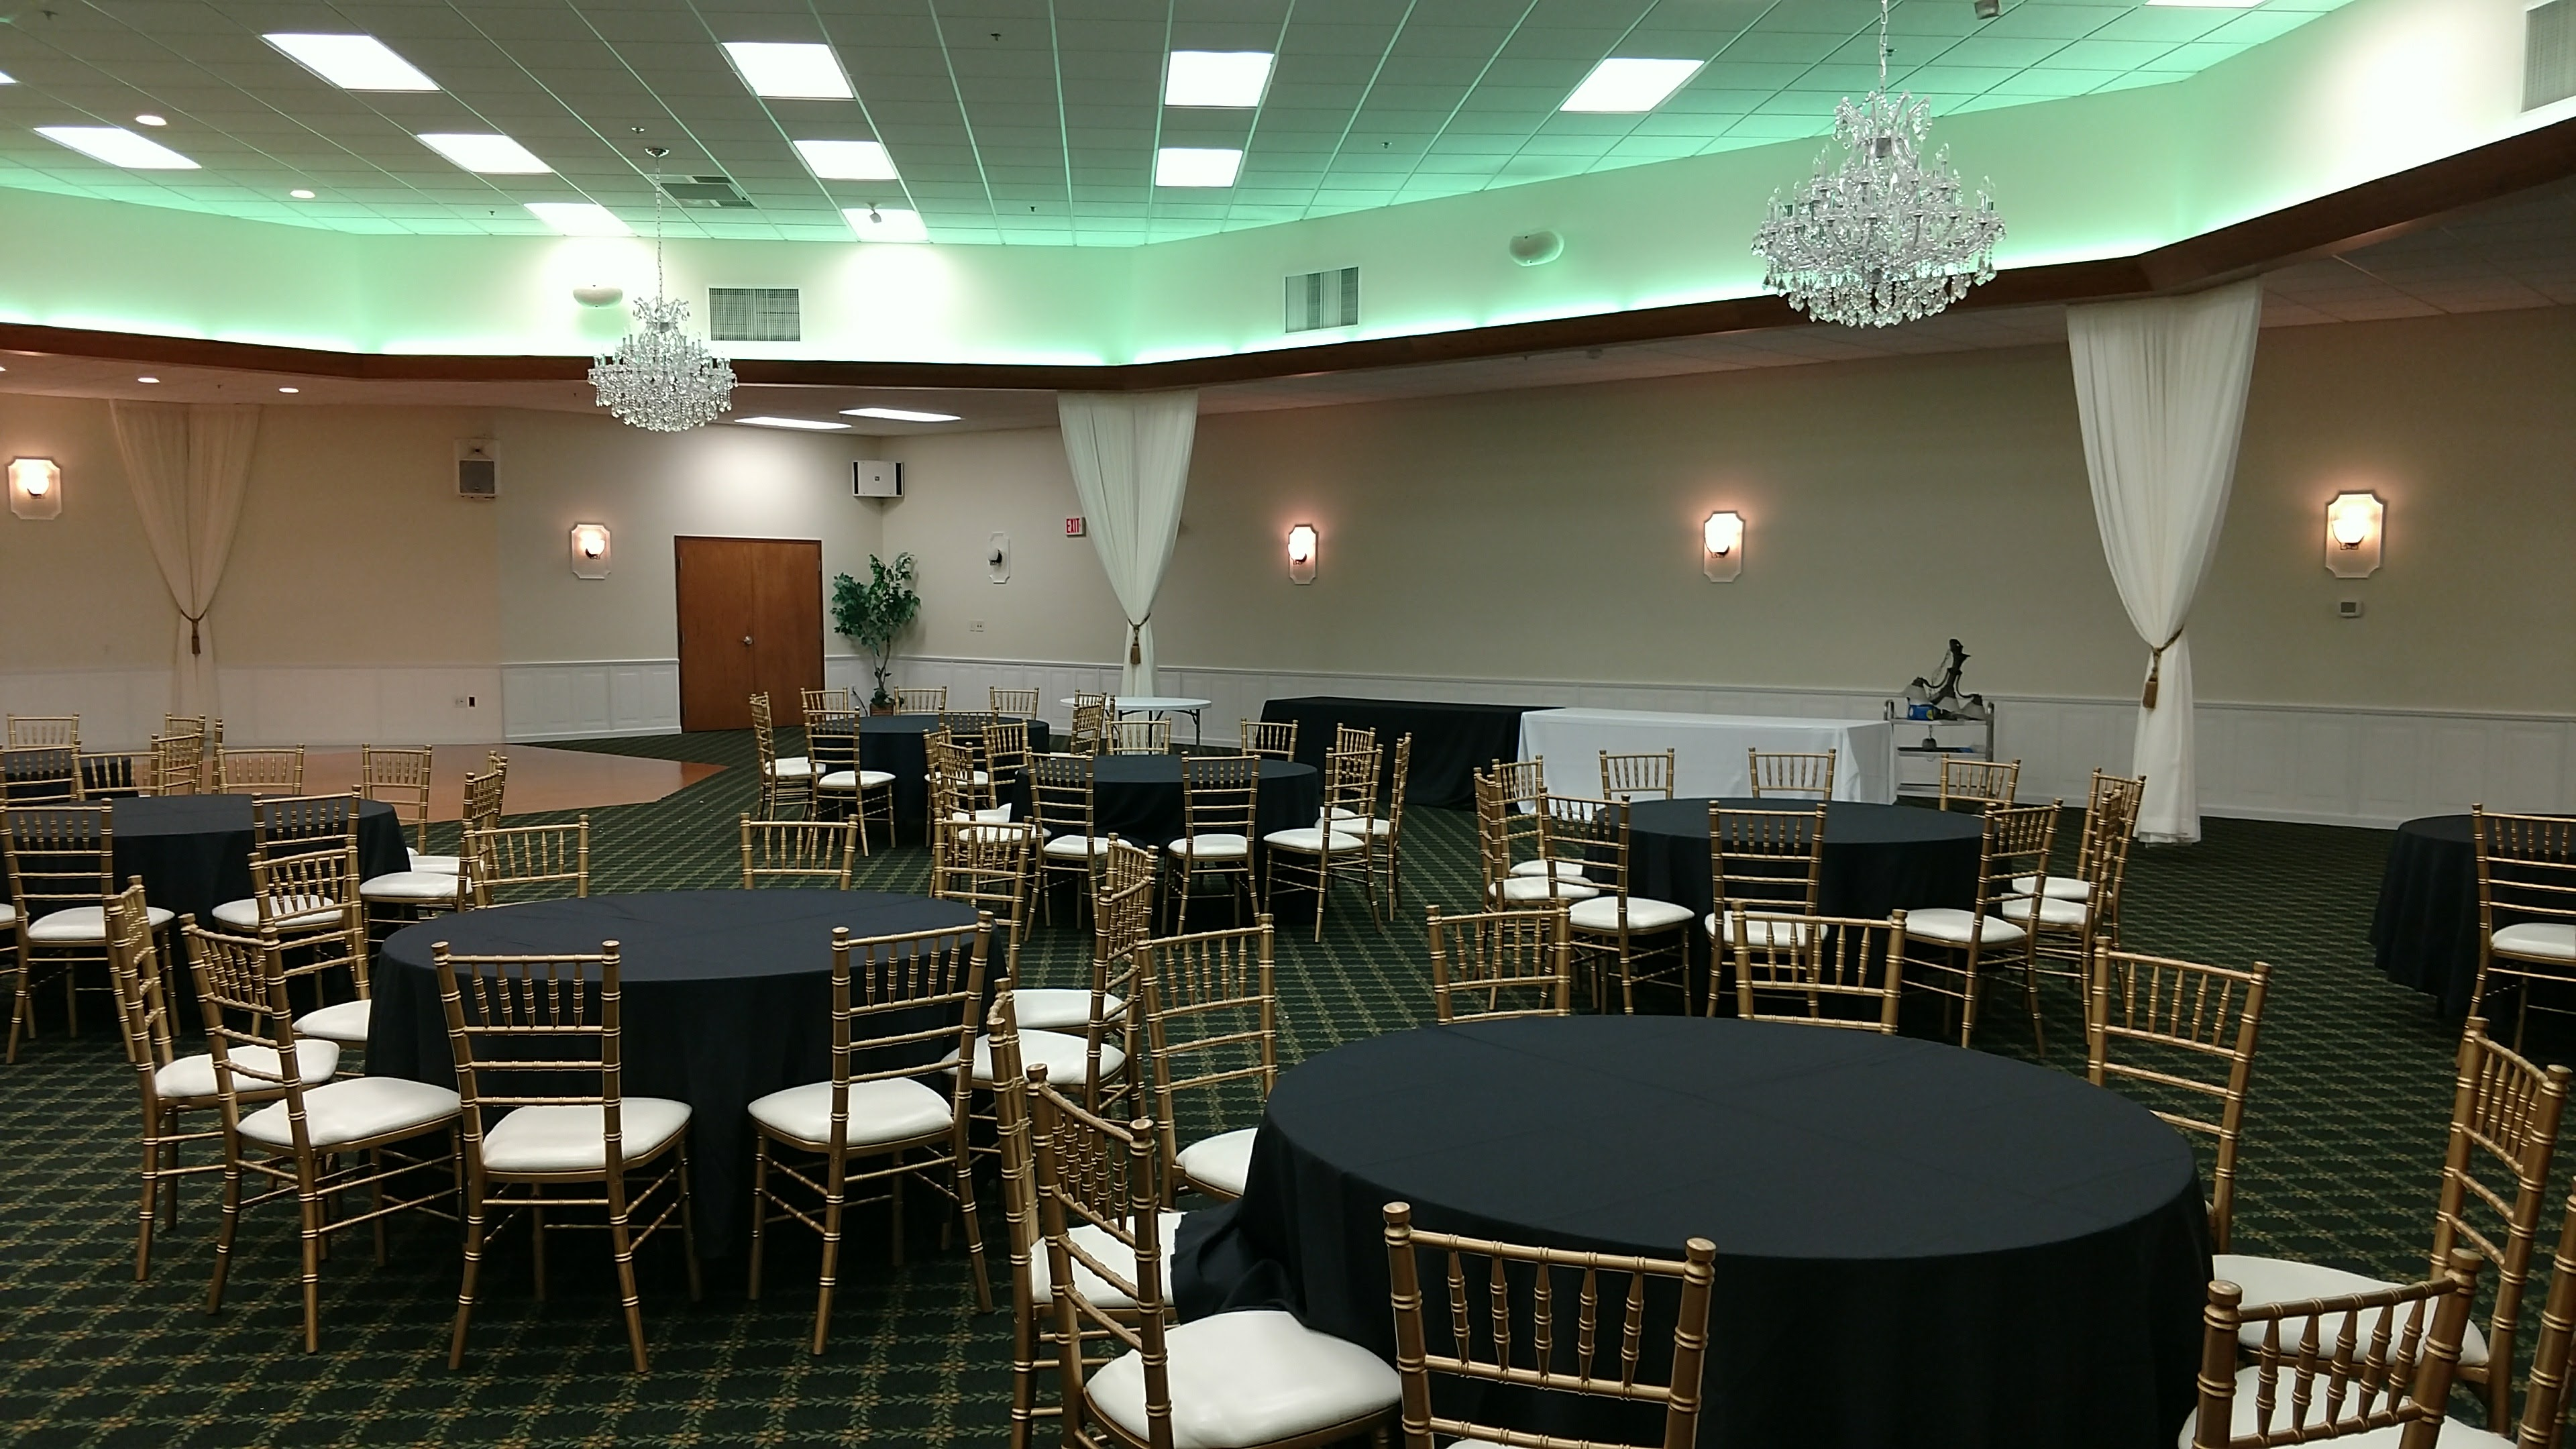 The Emerald Room At Sprinkler Fitters Local Union 692 Hall